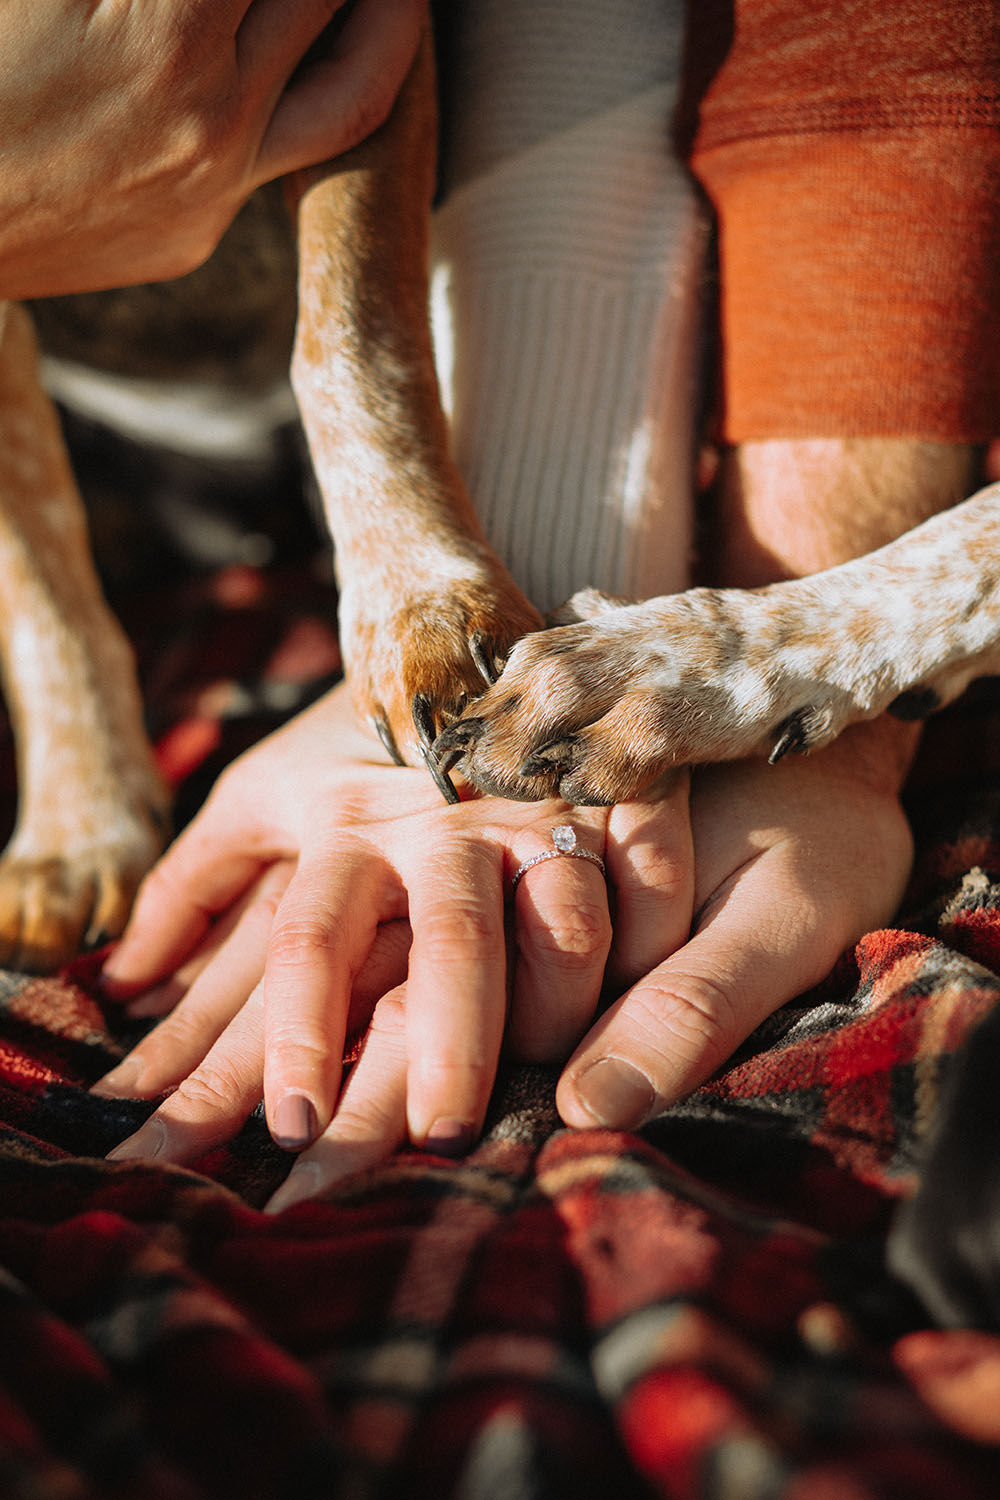 Shutter Up Studios | Wedding photographer in Crawfordsville Indiana | Diamond engagement ring with hands and dog paws at Sugar Creek Nature Park